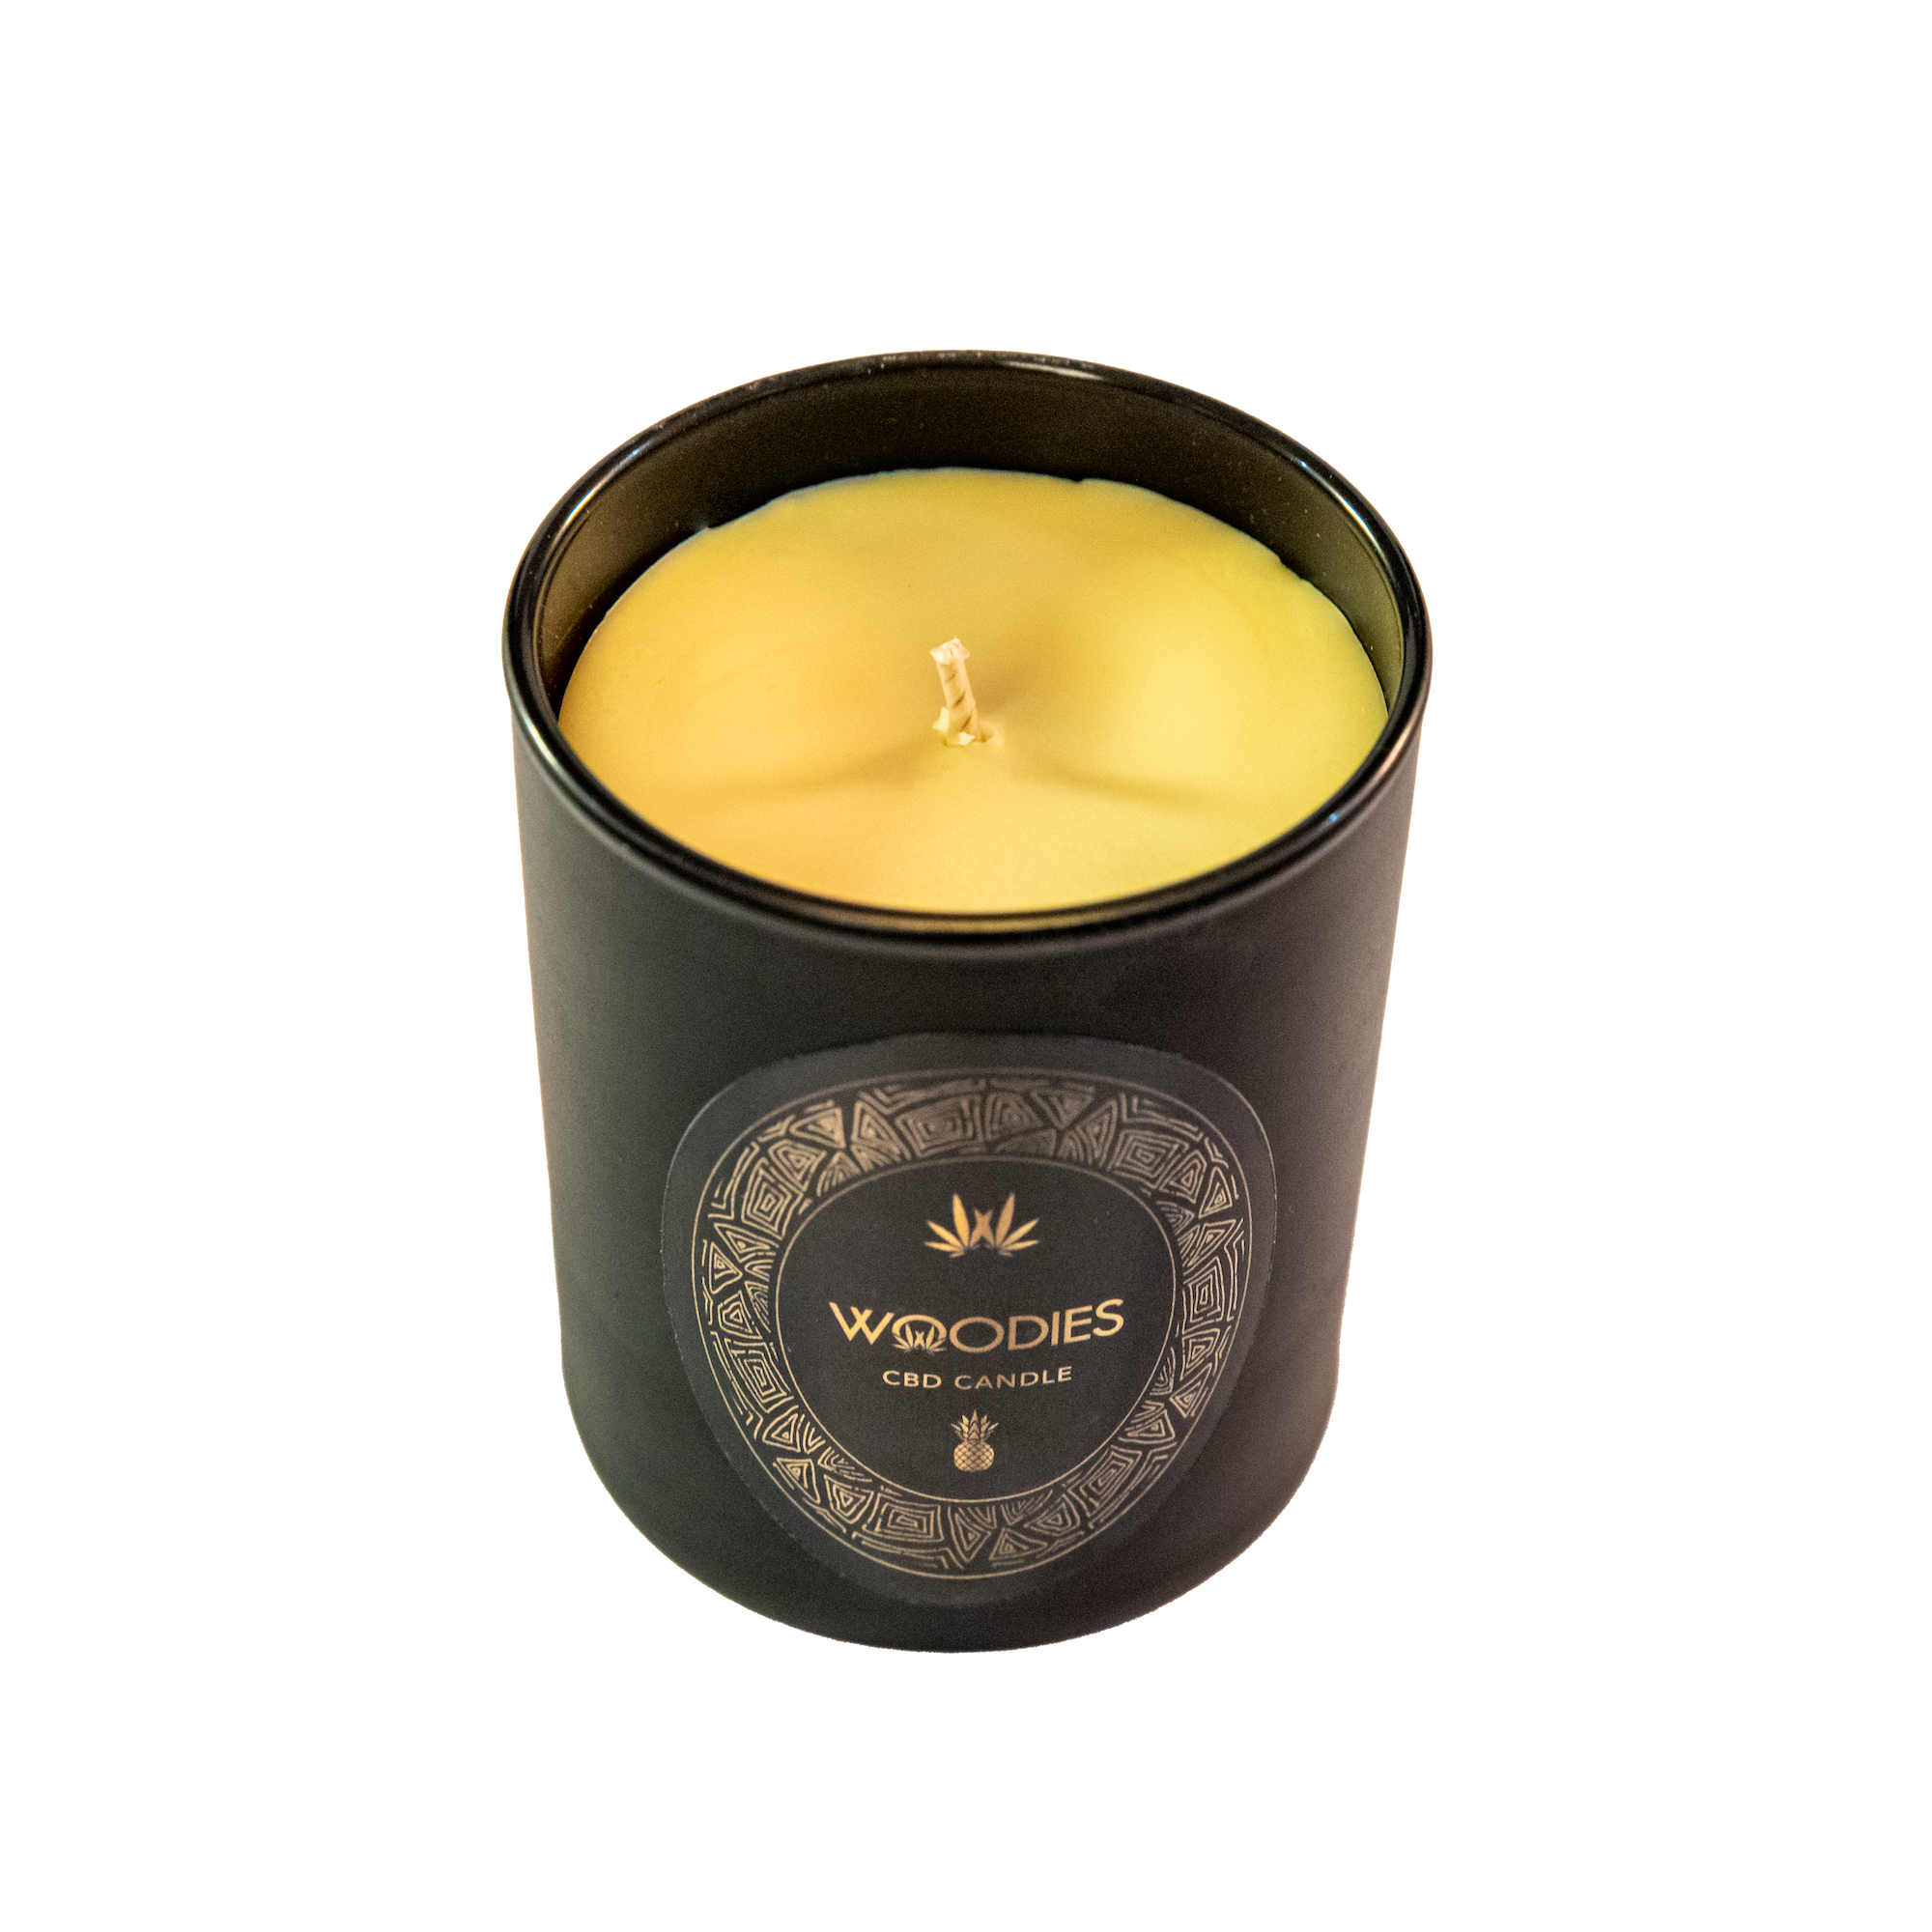 Woodies Pineapple Scented CBD Candle